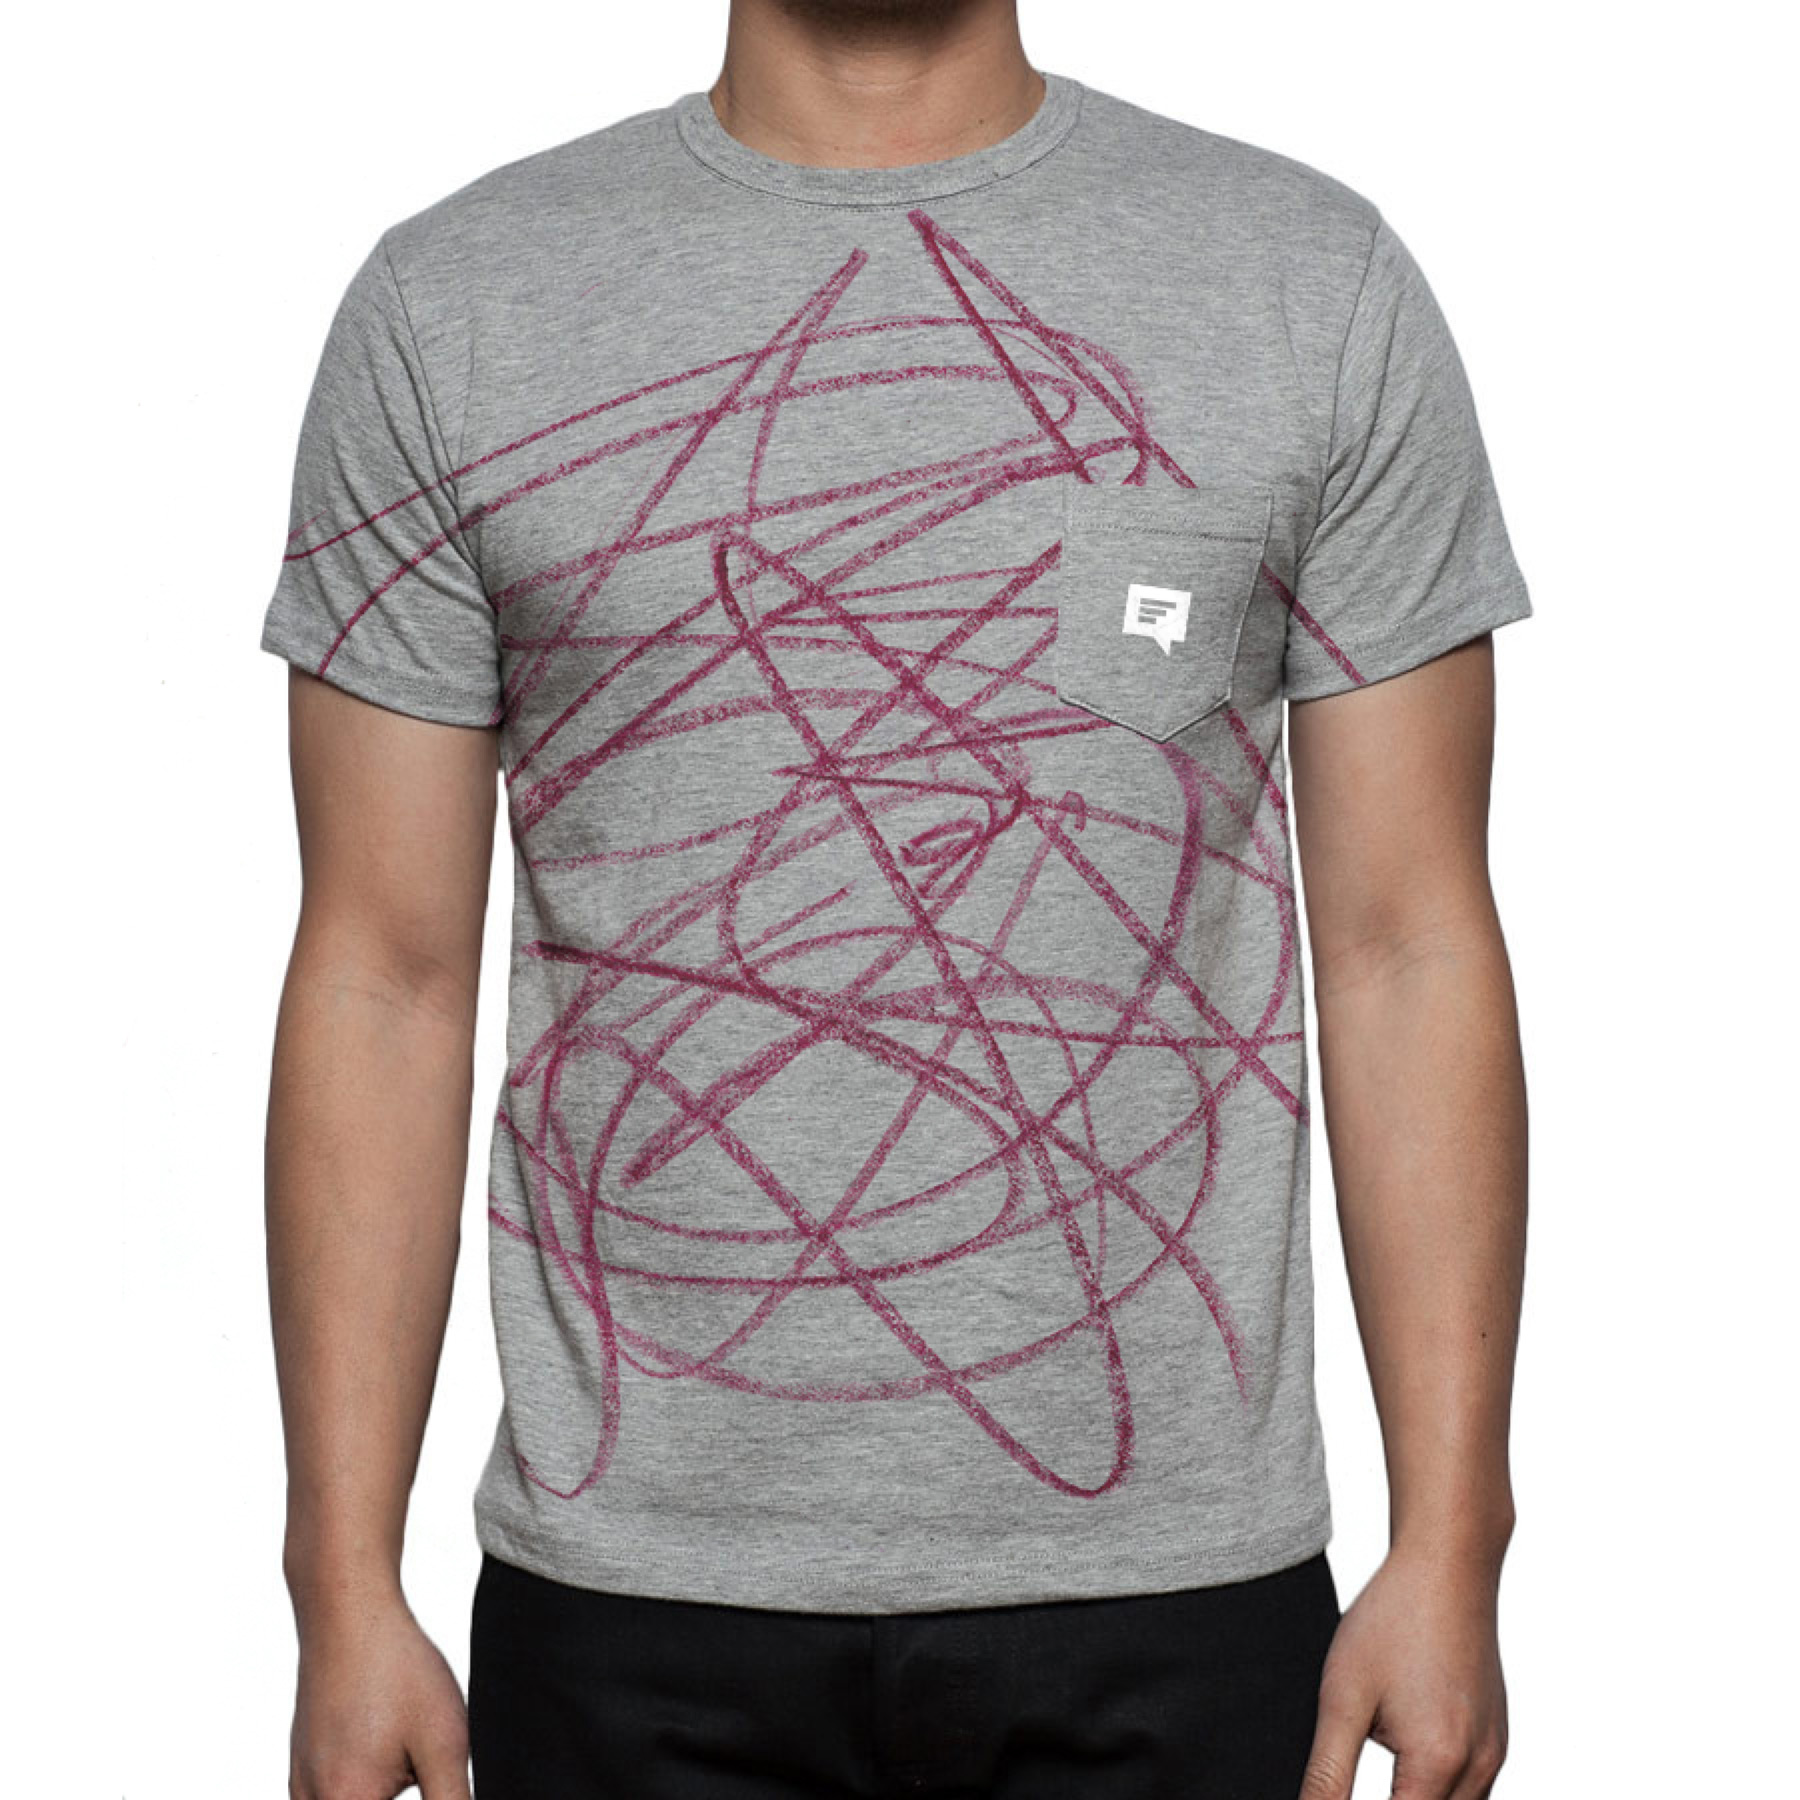 It was assumed that the kids would naturally color their t-shirts with everyday use alone,whether it be grass stains, paint, or food. With parents being less likely to do so, we decided to color it for them in their own t-shirts pictured above.